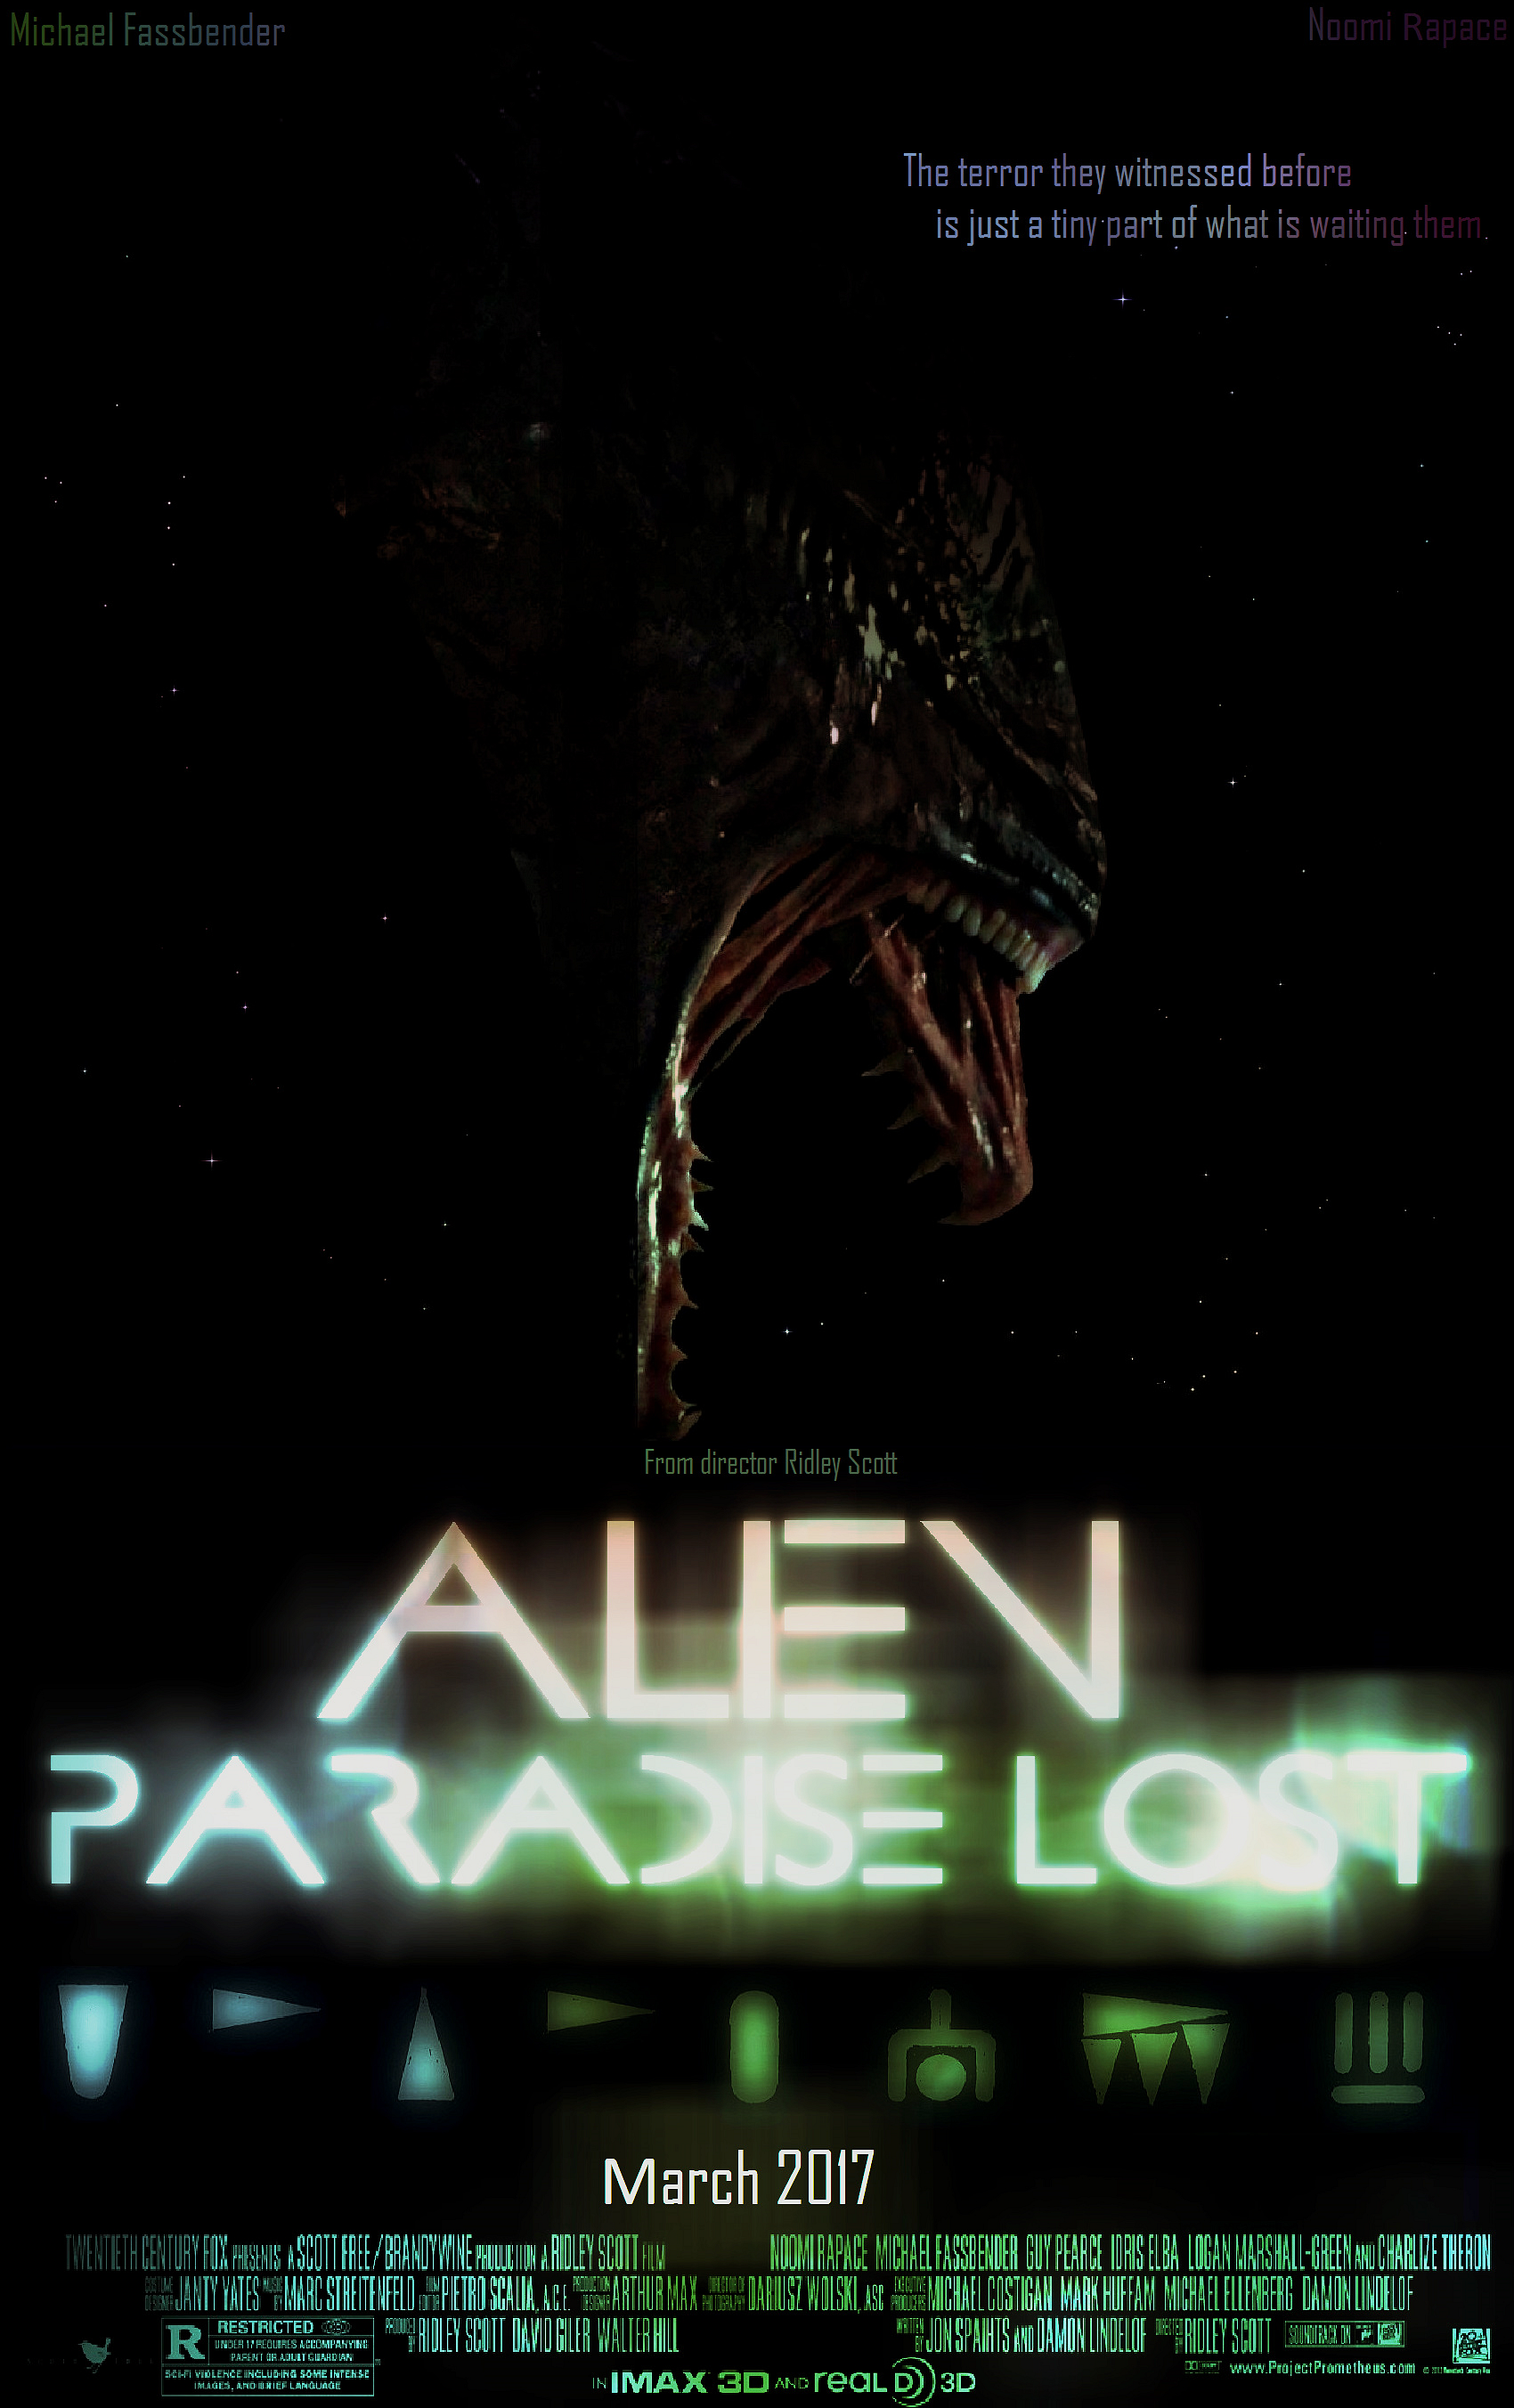 alien_paradise_lost_poster__updated_by_scpmaniac34-d9bfafk